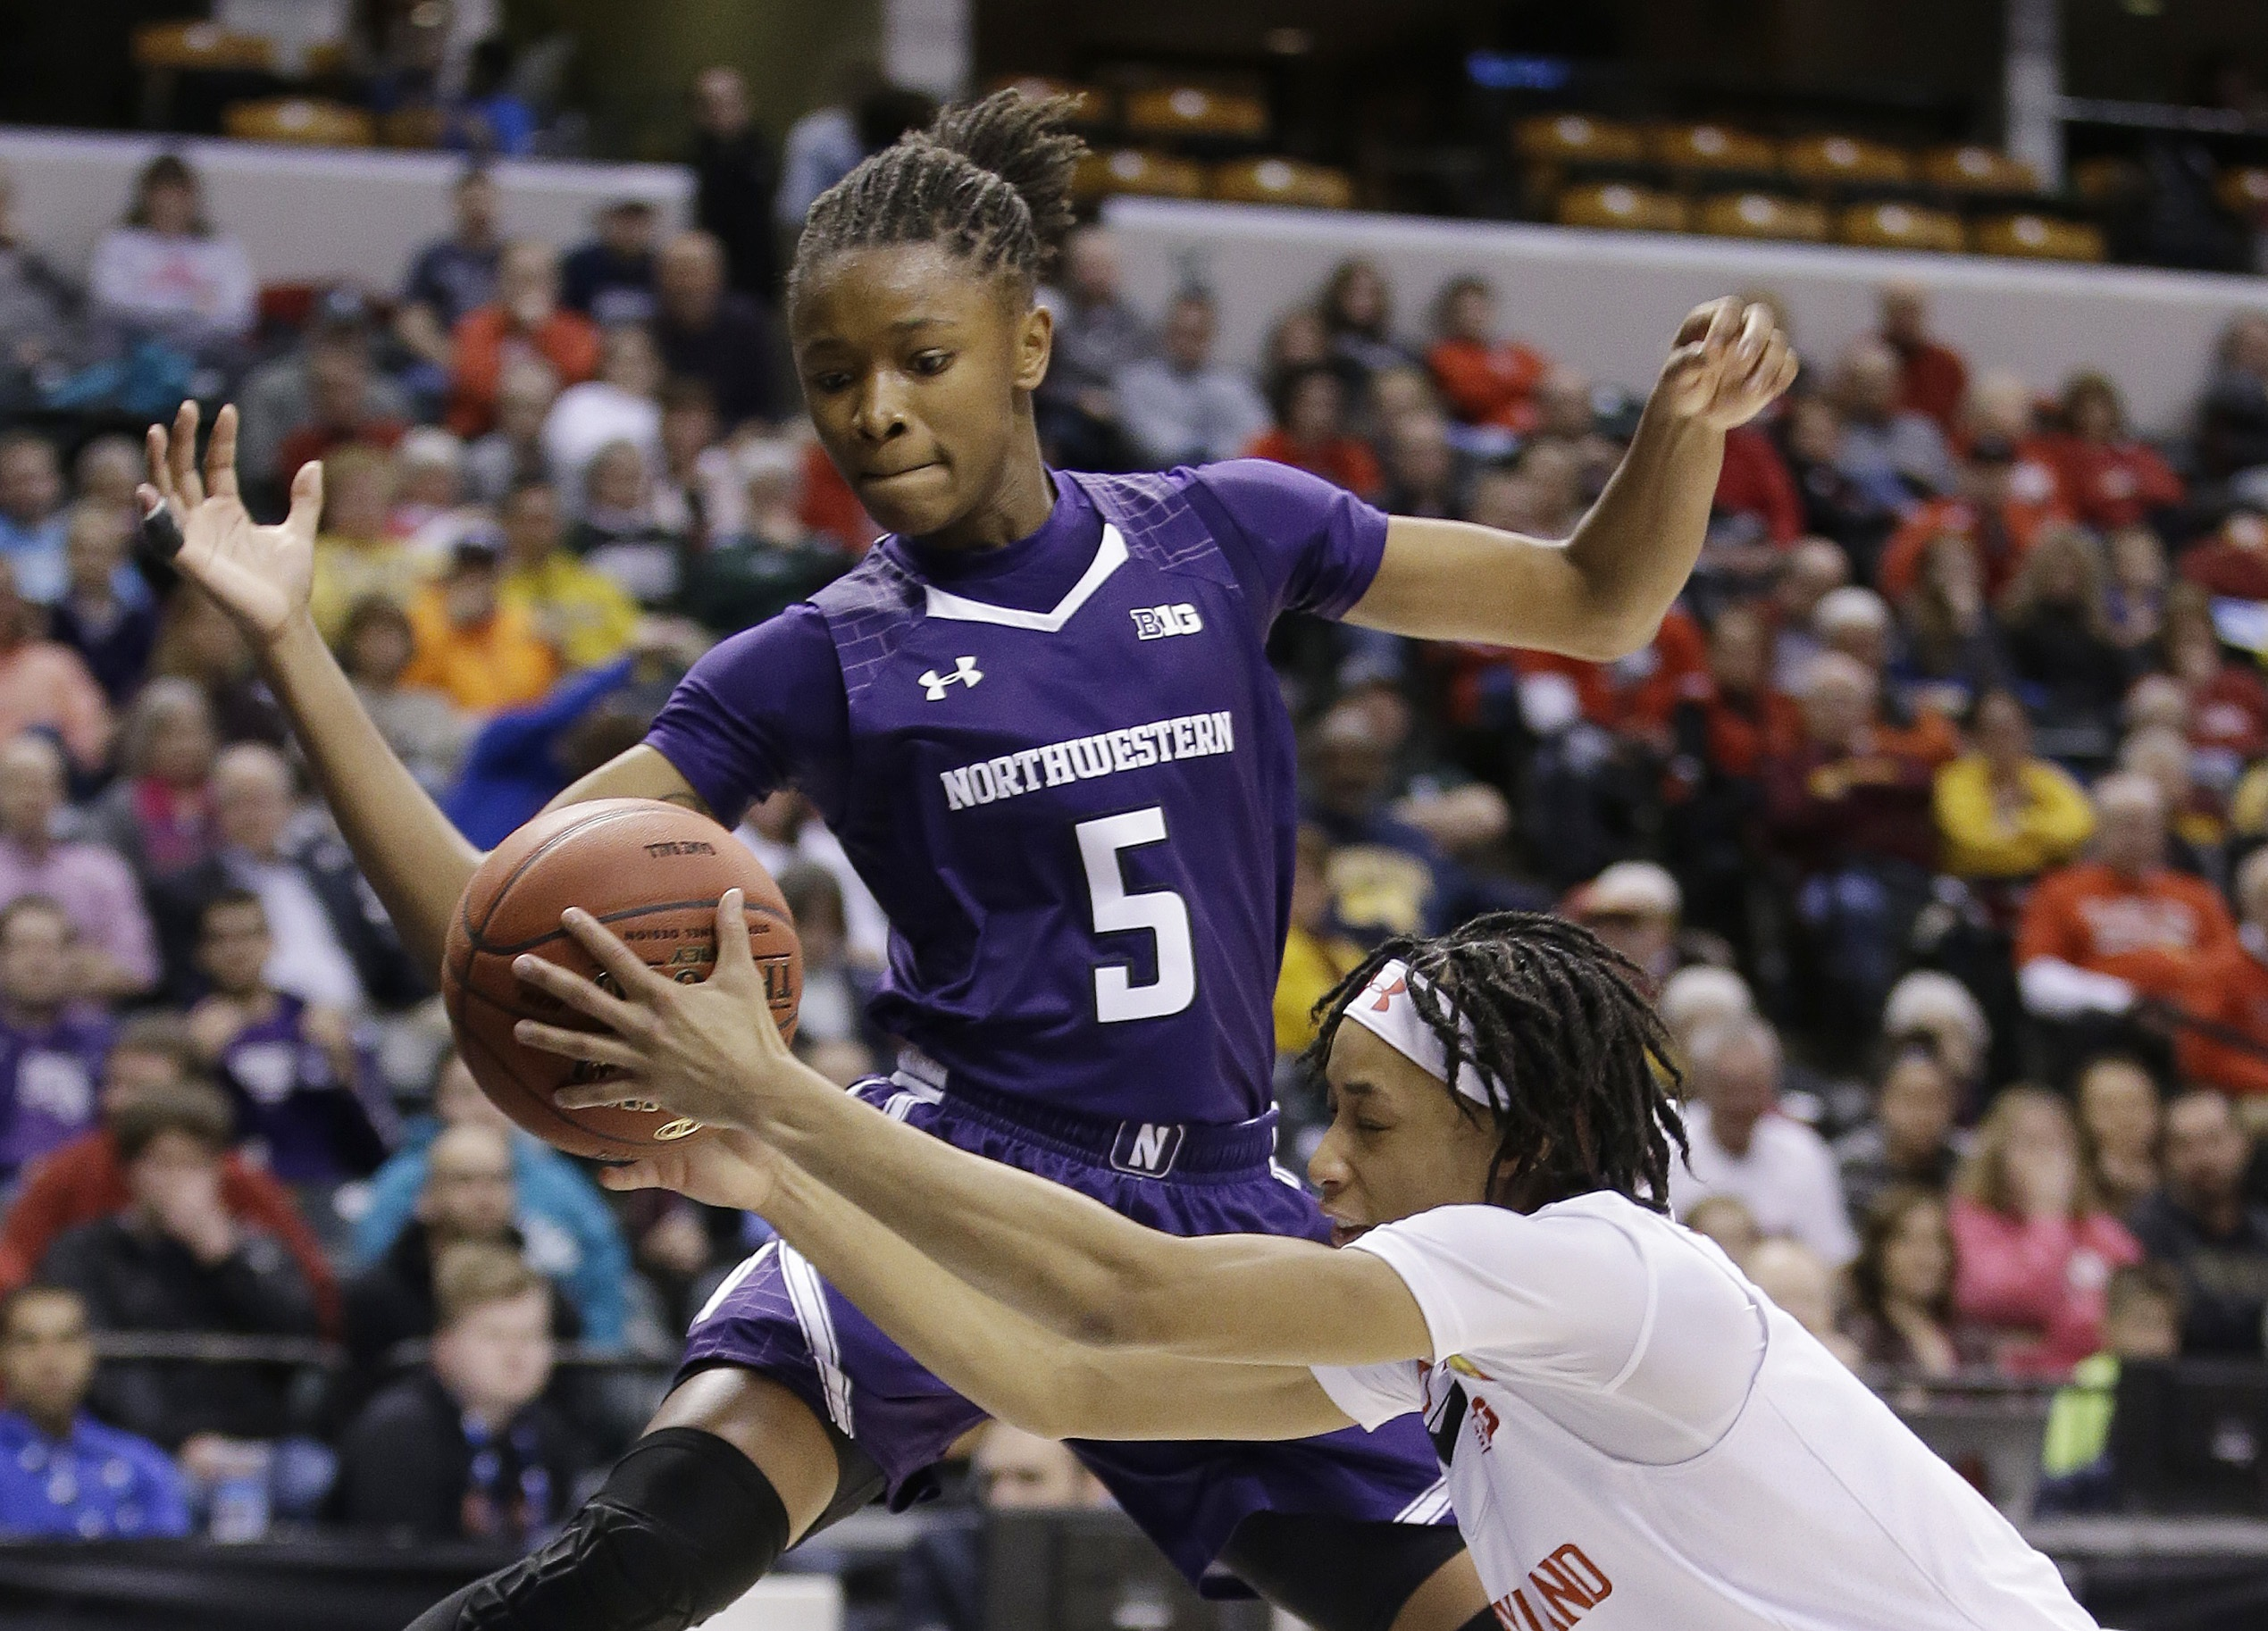 Northwestern women's basketball player Jordan Hankins' death ruled suicide